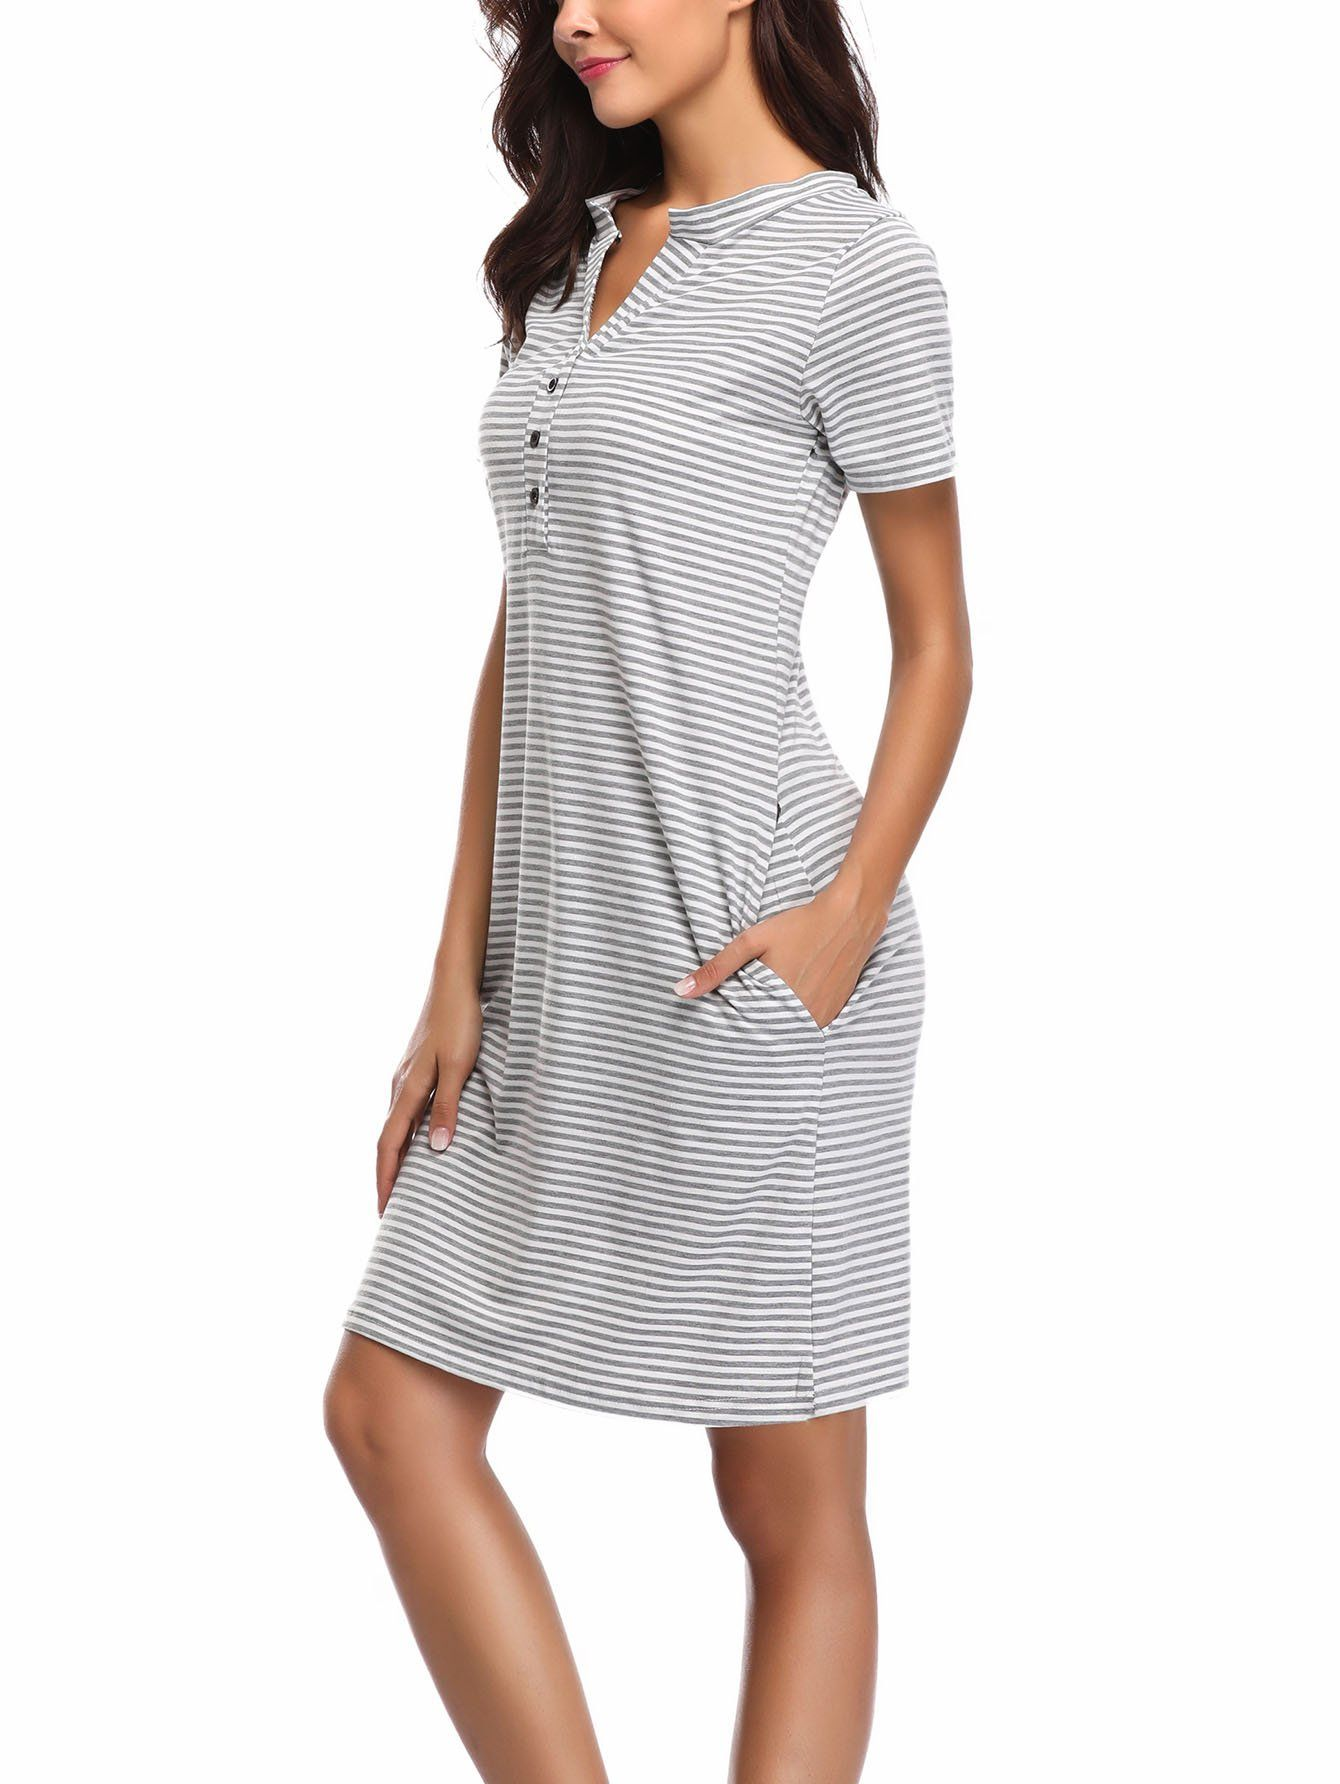 db9776ea64ba2 nursing tops - WOAIVOOU Womens Maternity Dress Short Sleeve Nursing  Nightgown for Breastfeeding Sleepwear *** Be sure to check out this  outstanding product.